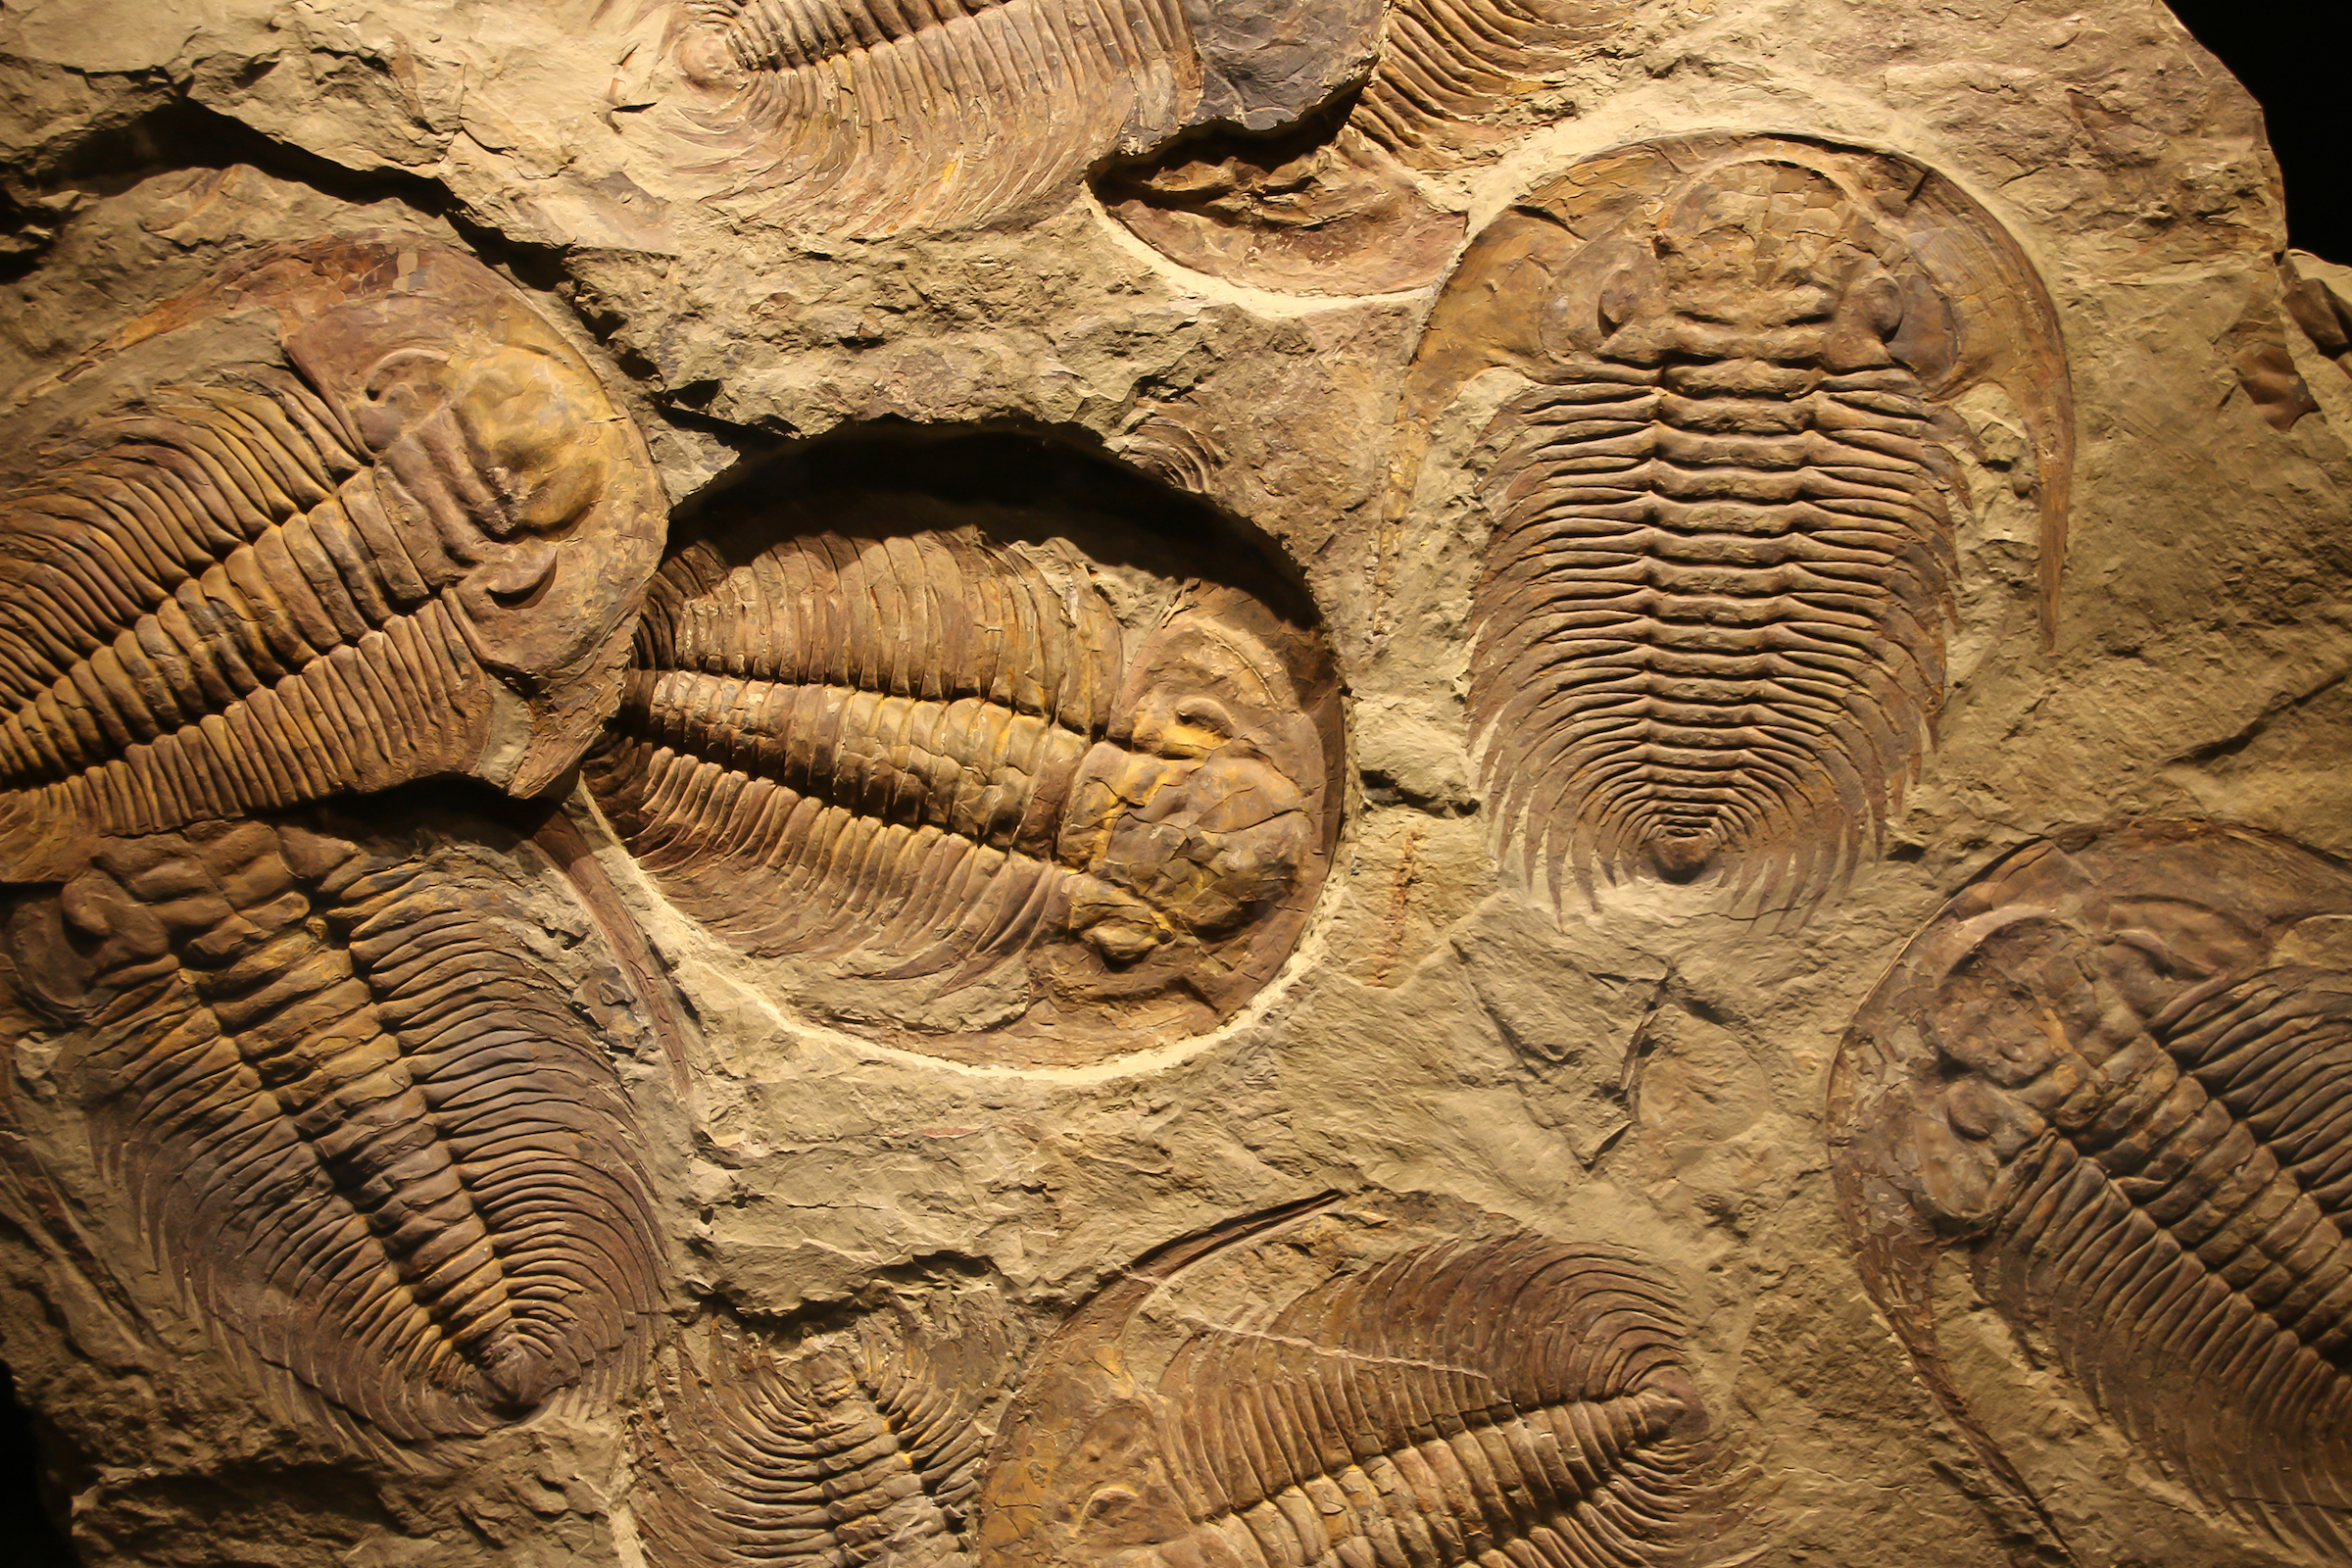 What did trilobites go extinct? thumbnail